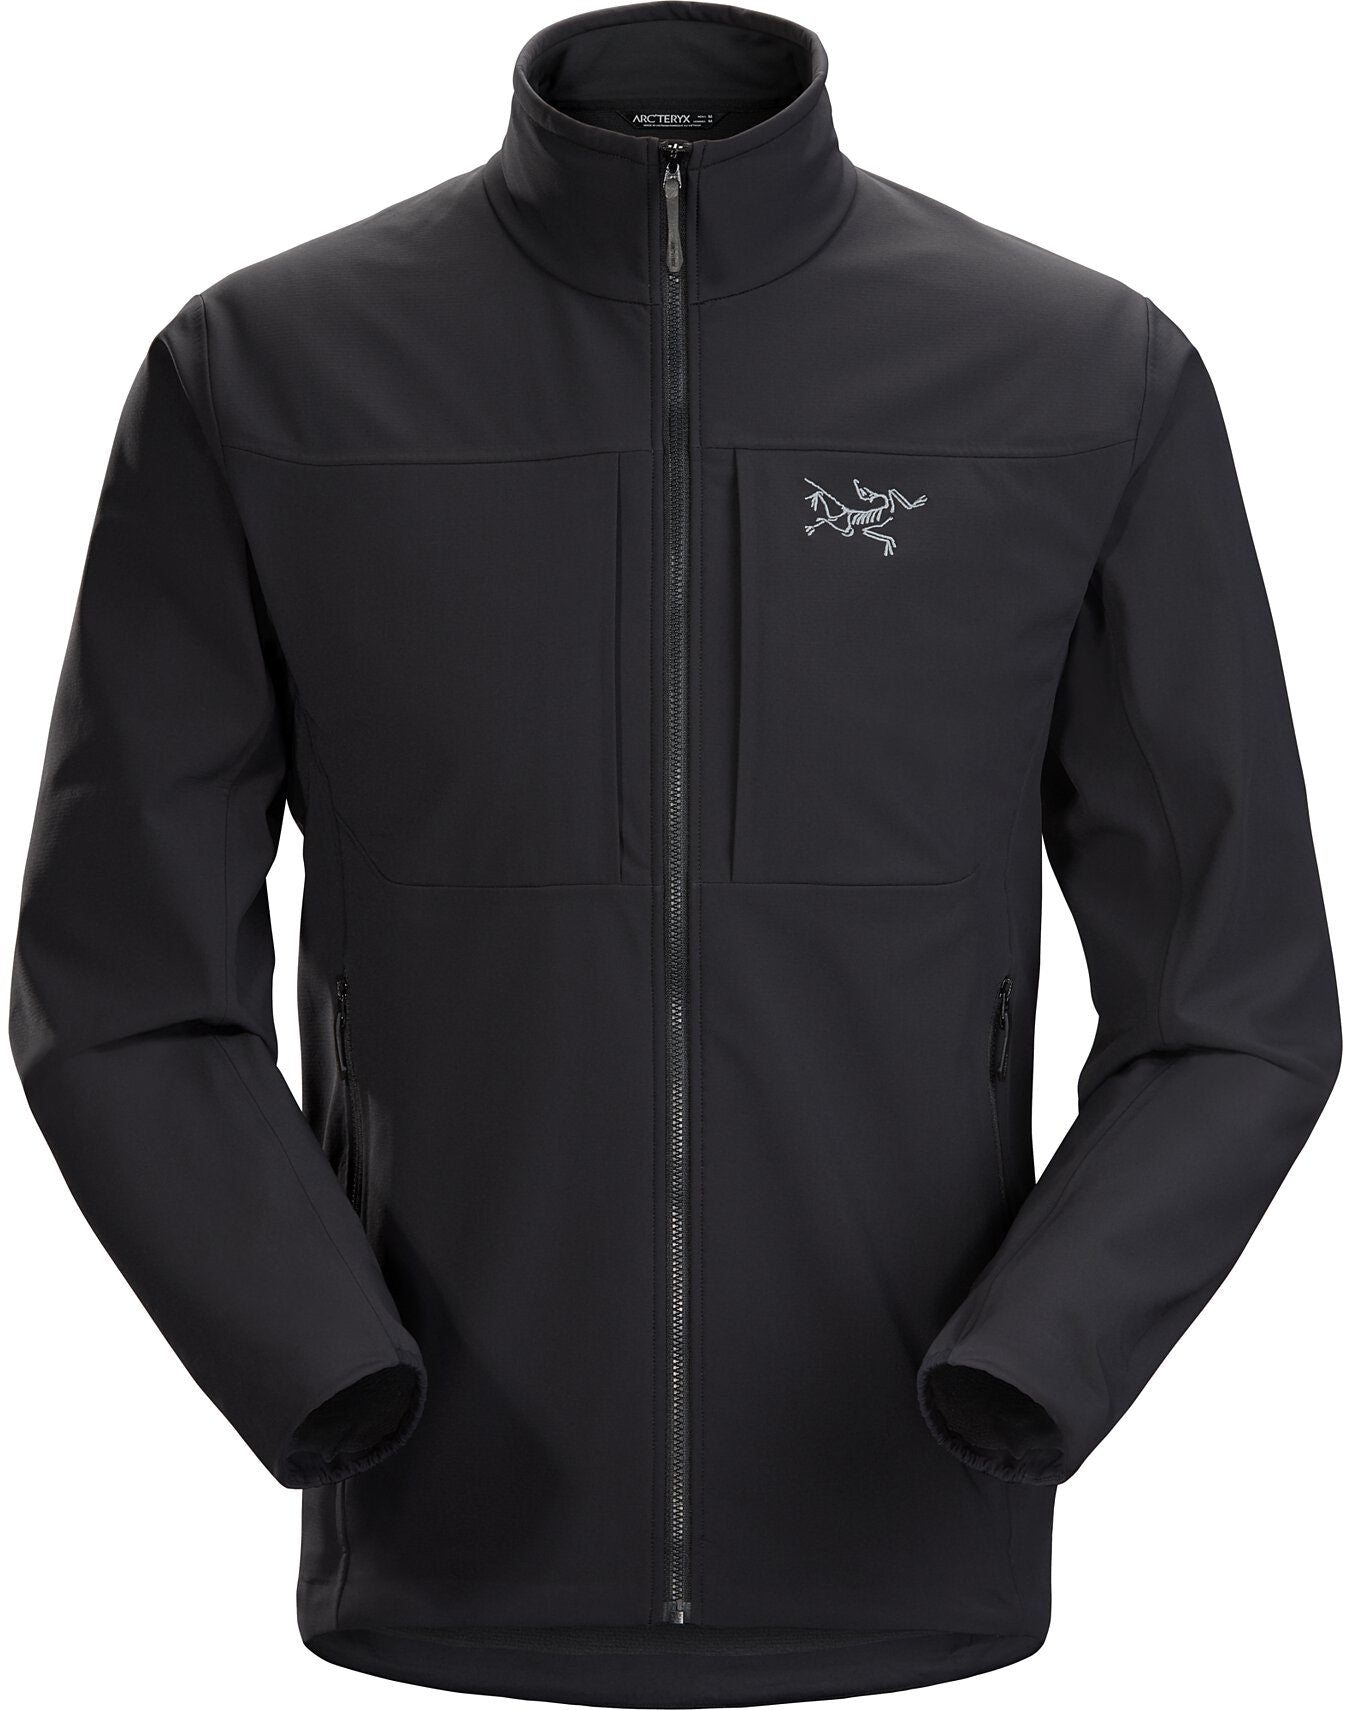 Arc'teryx Gamma MX Jacket Men's (Revised)